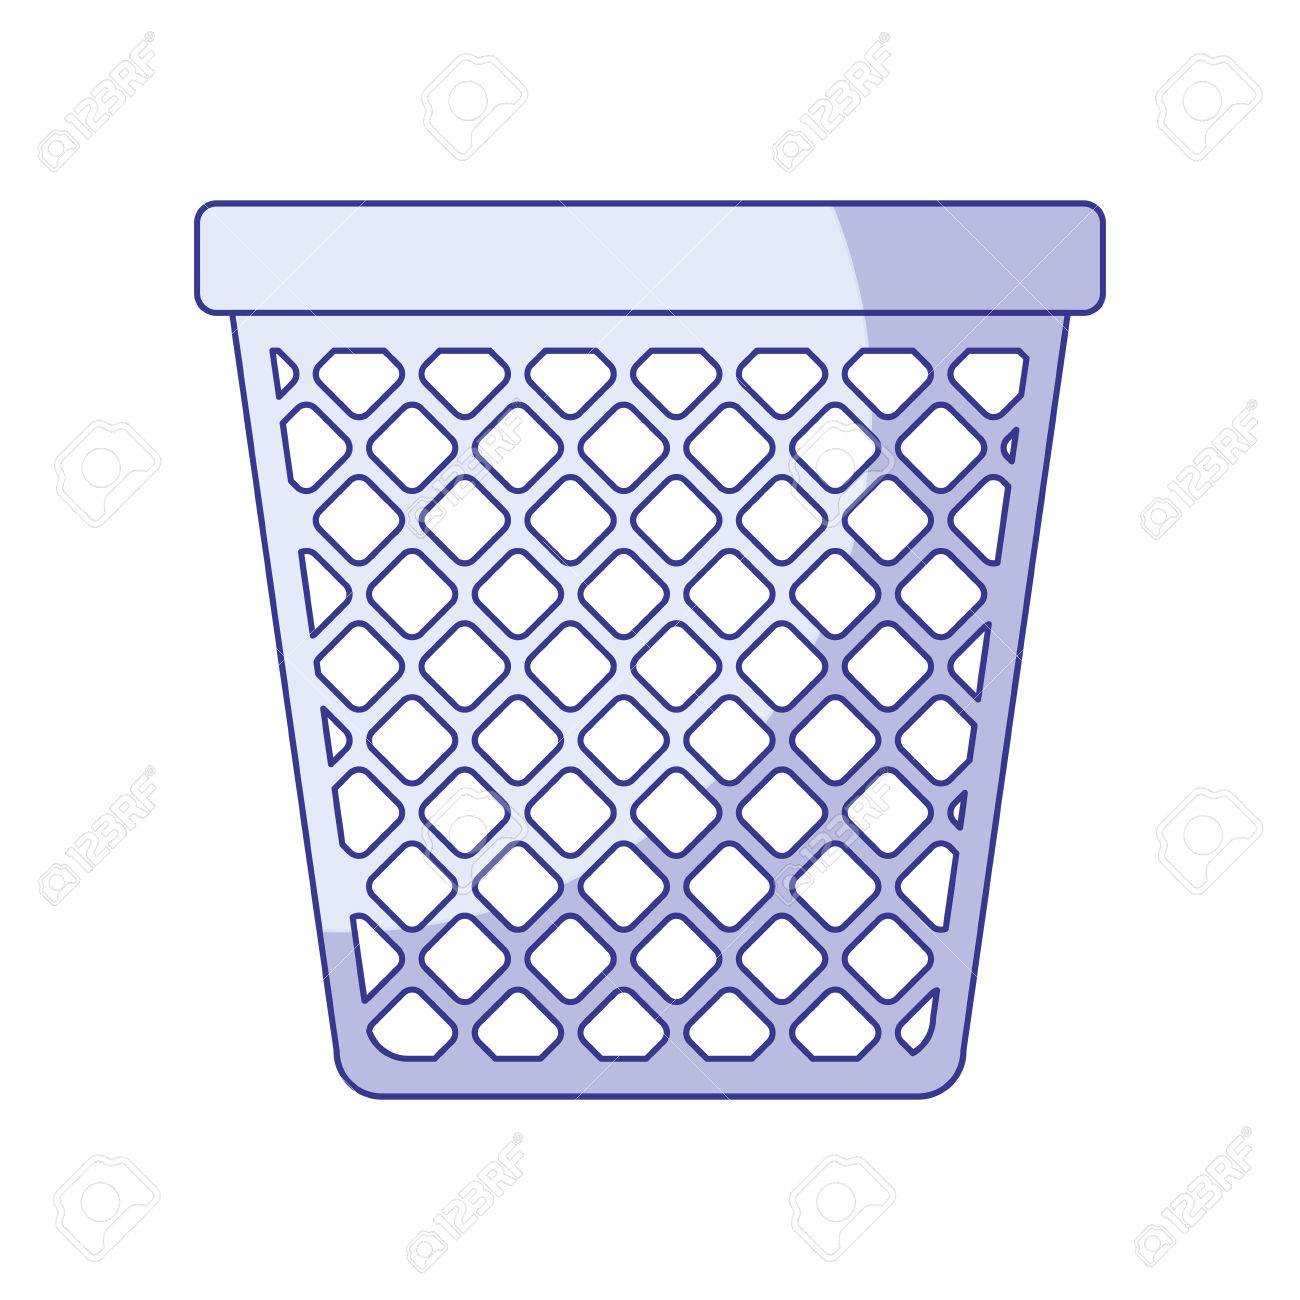 Blue Shading Silhouette Of Office Trash Can Vector Illustration Stock  Vector   79563139